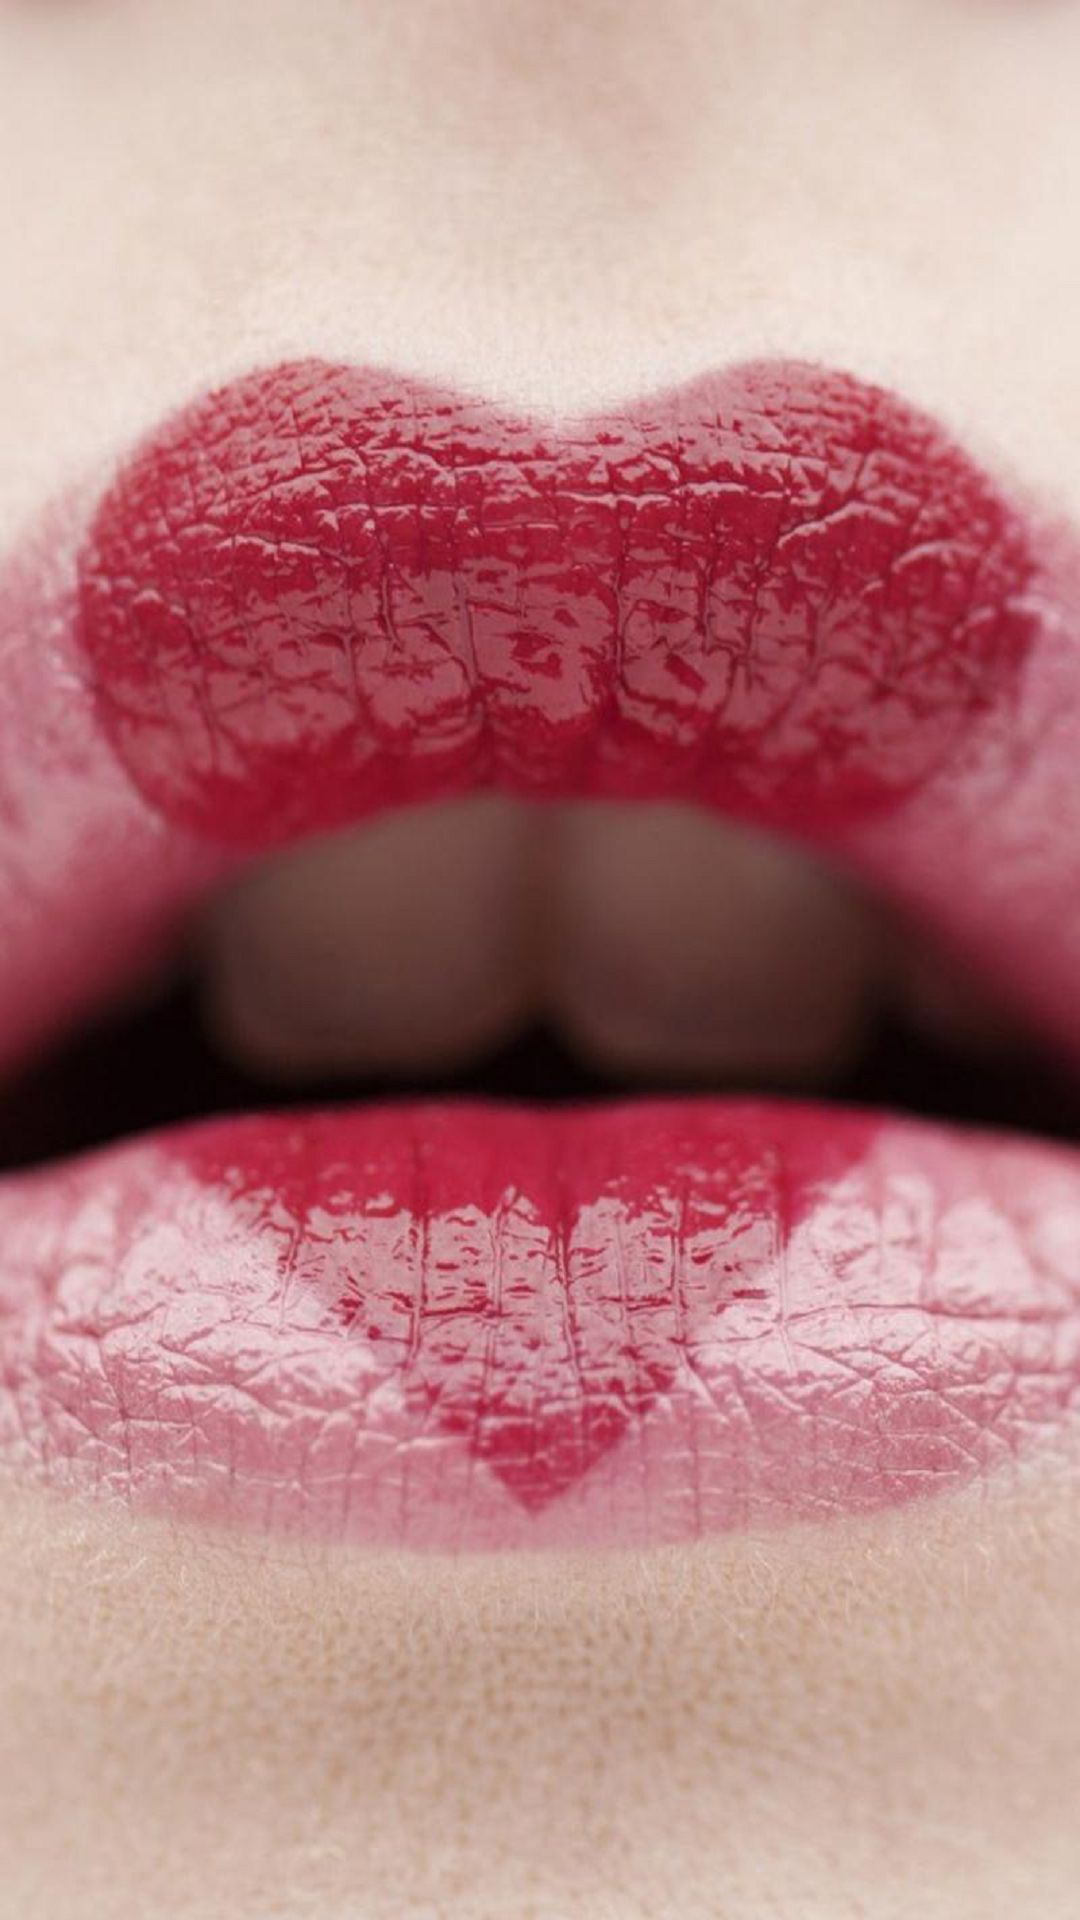 Love Heart Lips htc one wallpaper